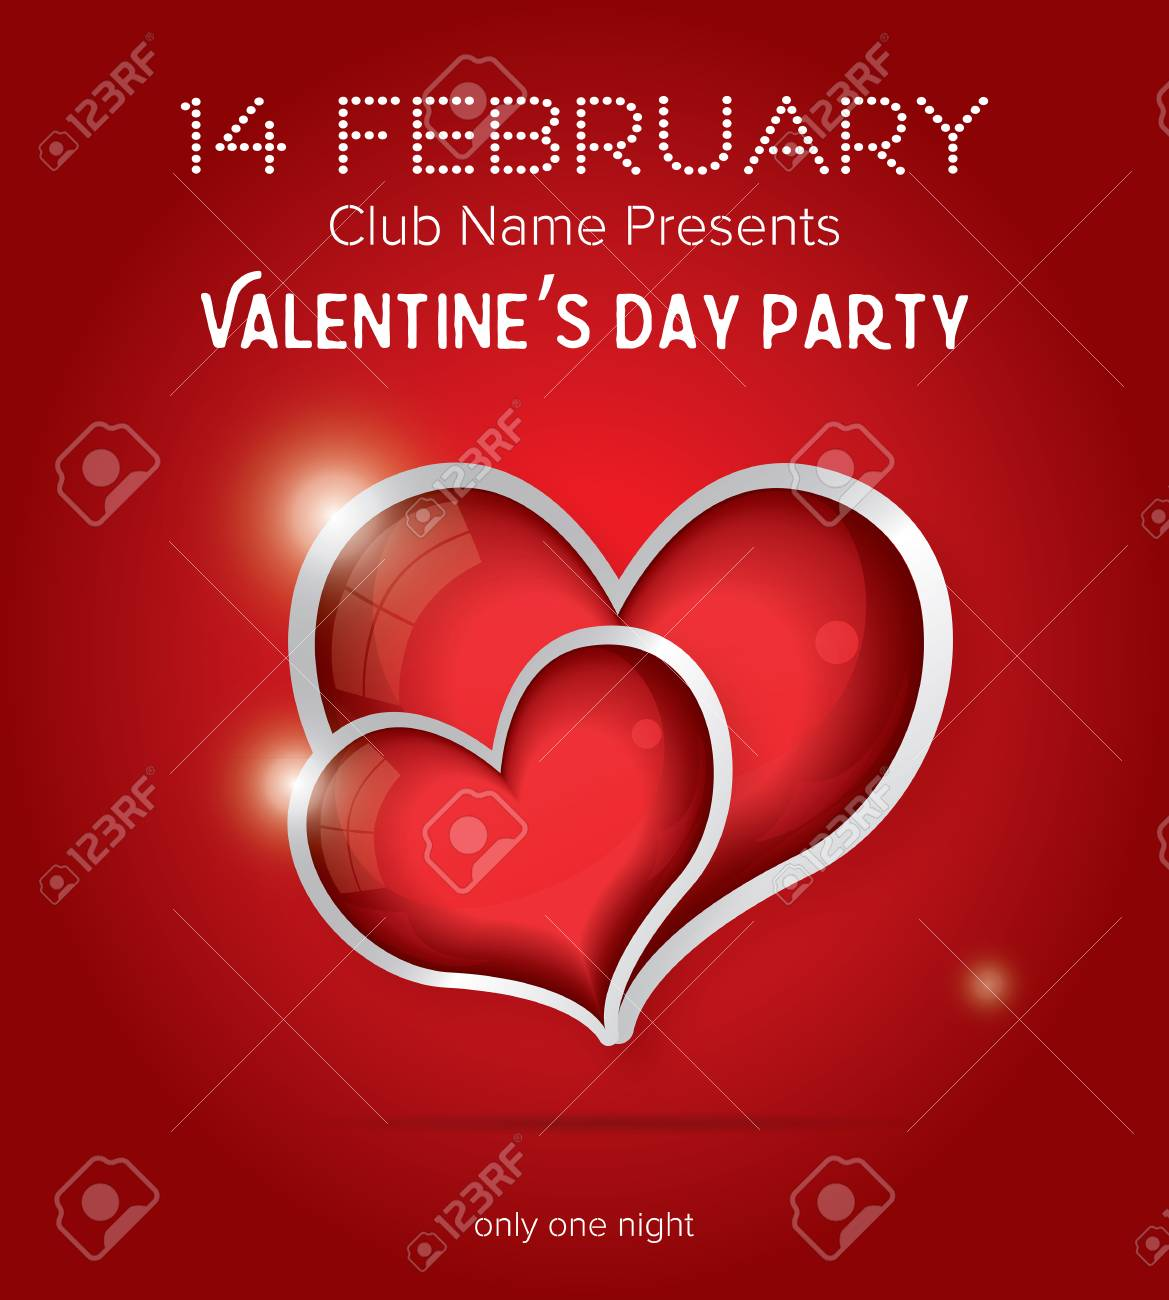 Happy Valentines Day Party Flyer Design Template Vector Illustration Club Concept With Two